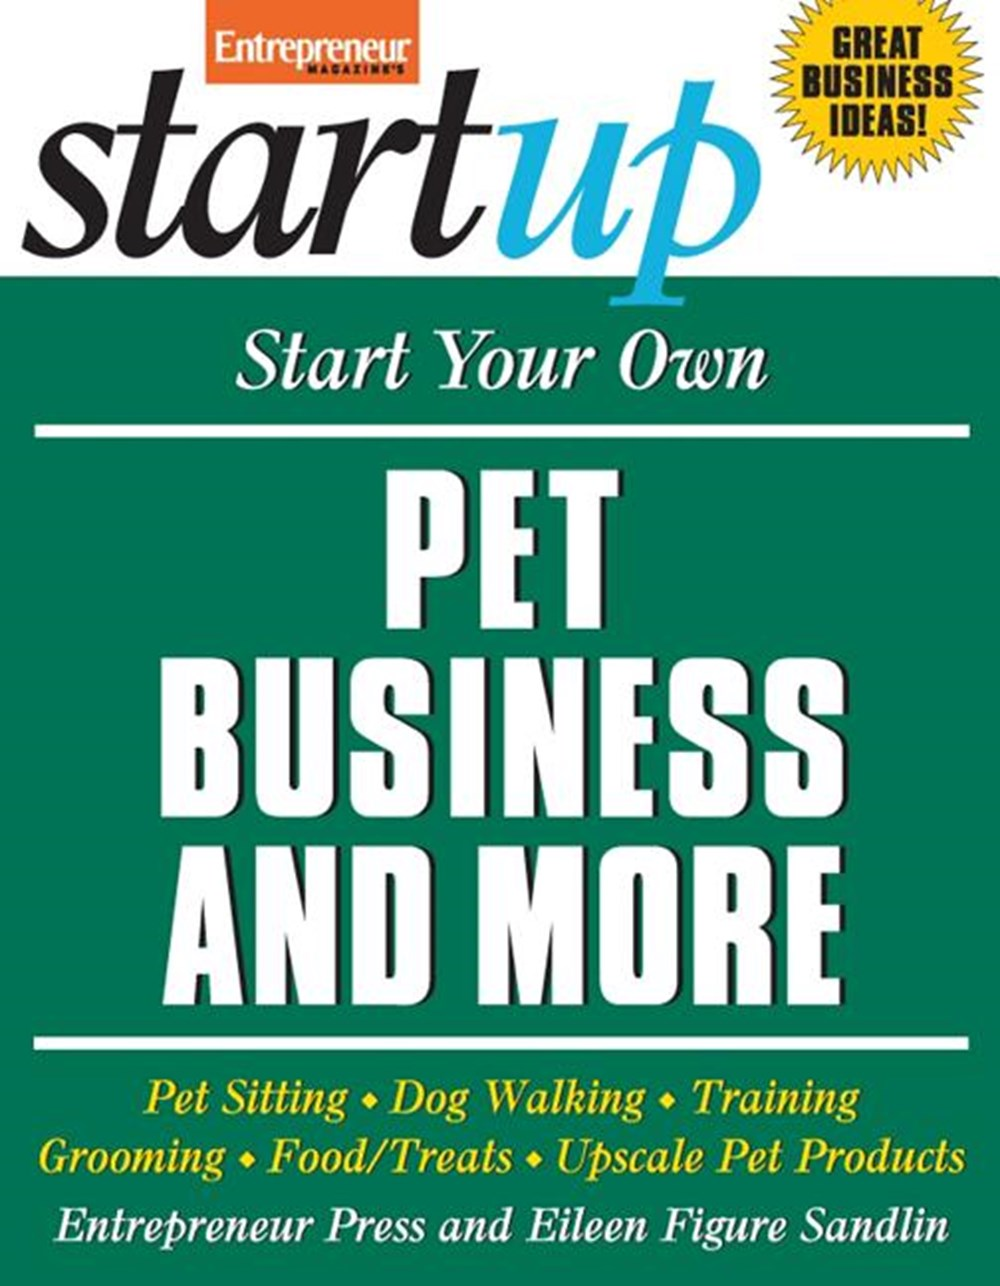 Start Your Own Pet Business and More: Pet Sitting, Dog Walking, Training, Grooming, Food/Treats, Ups